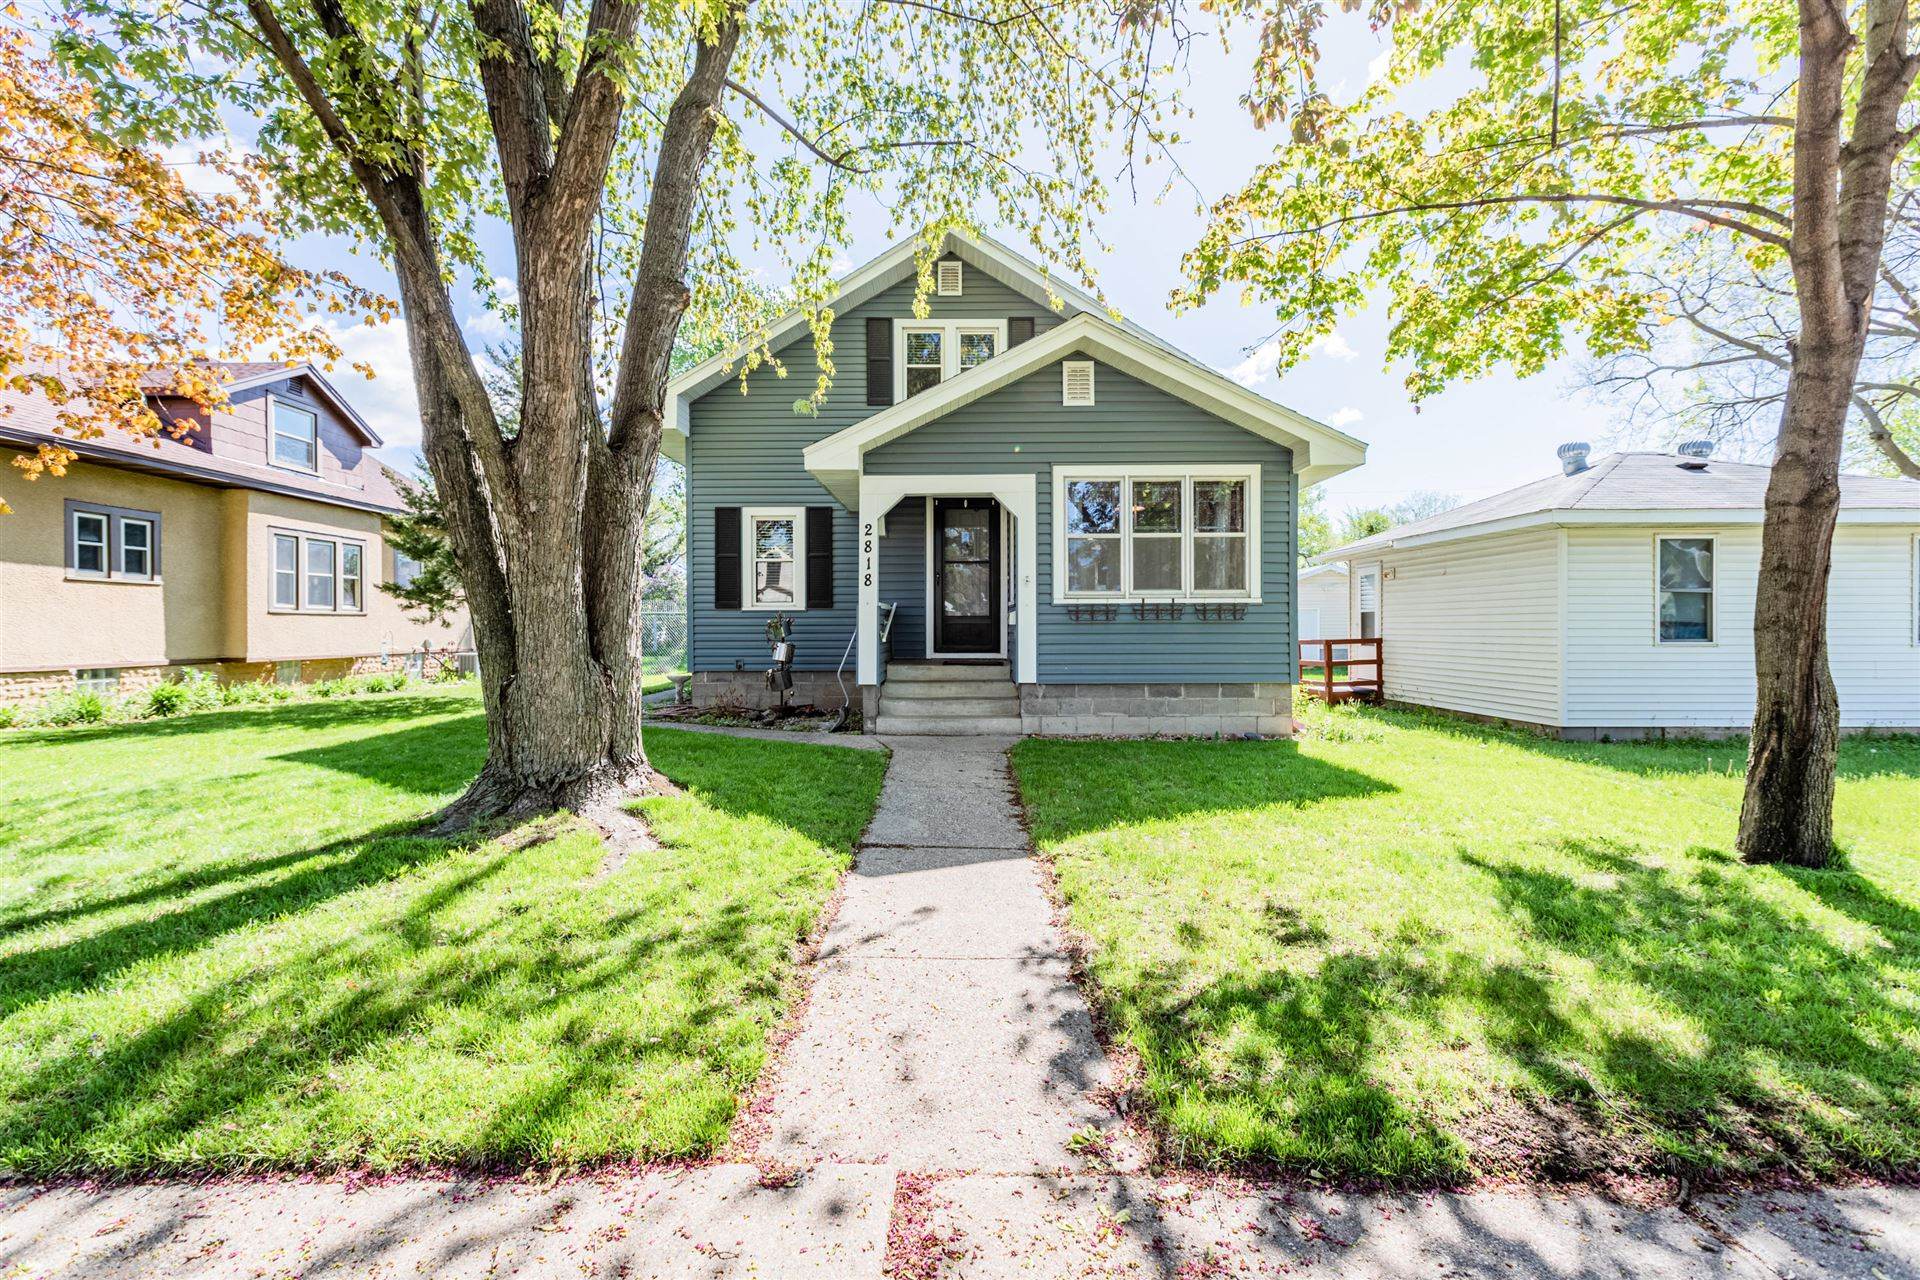 2818 Harvey St, La Crosse, WI 54603 - MLS#: 1738915